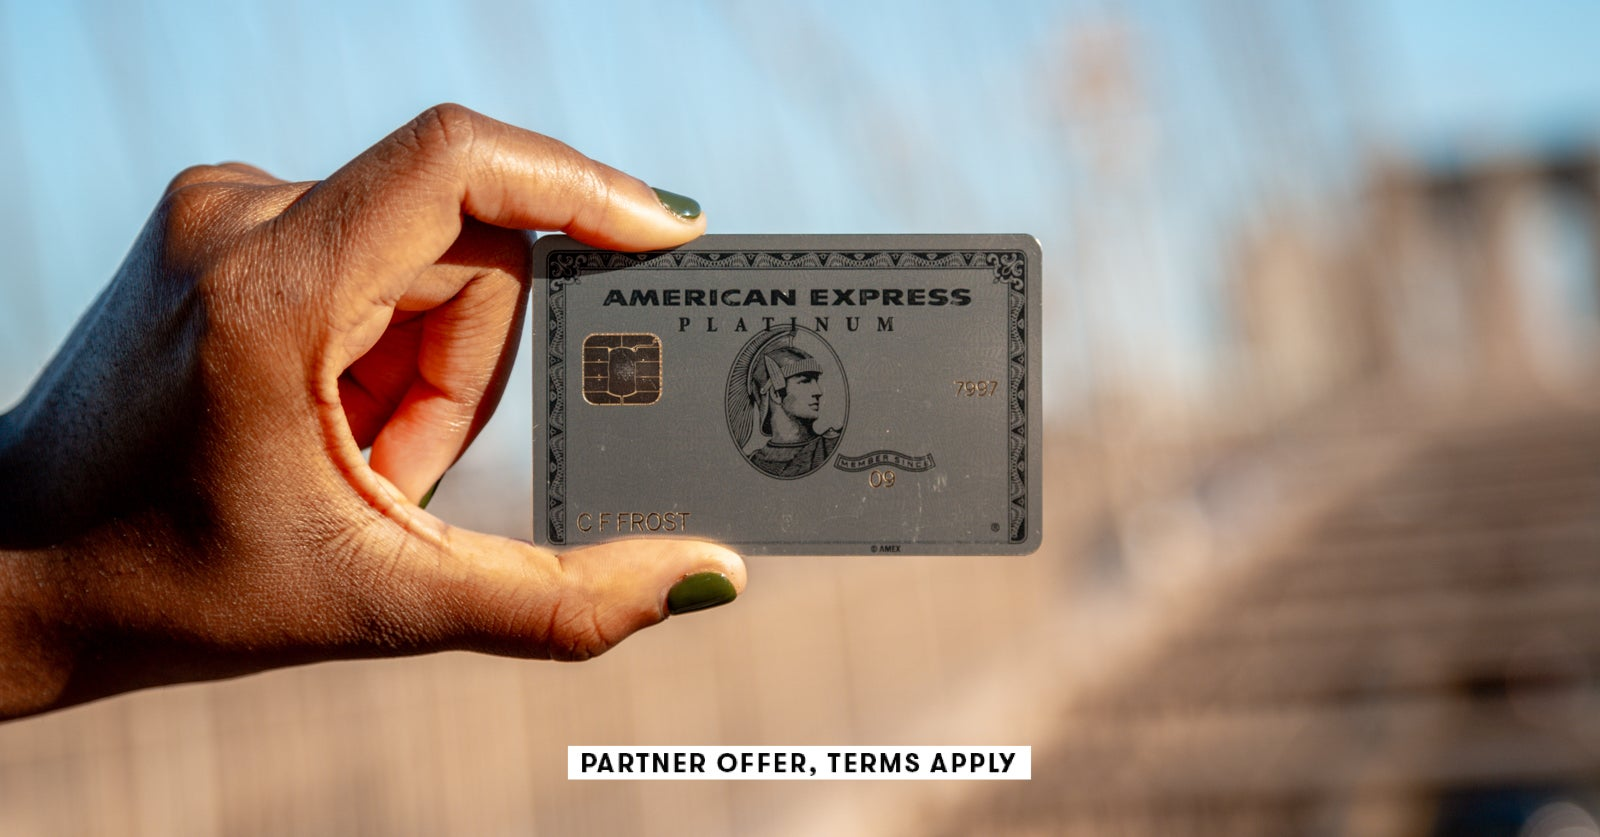 Amex eliminating email option for Platinum Card Concierge - The Points Guy